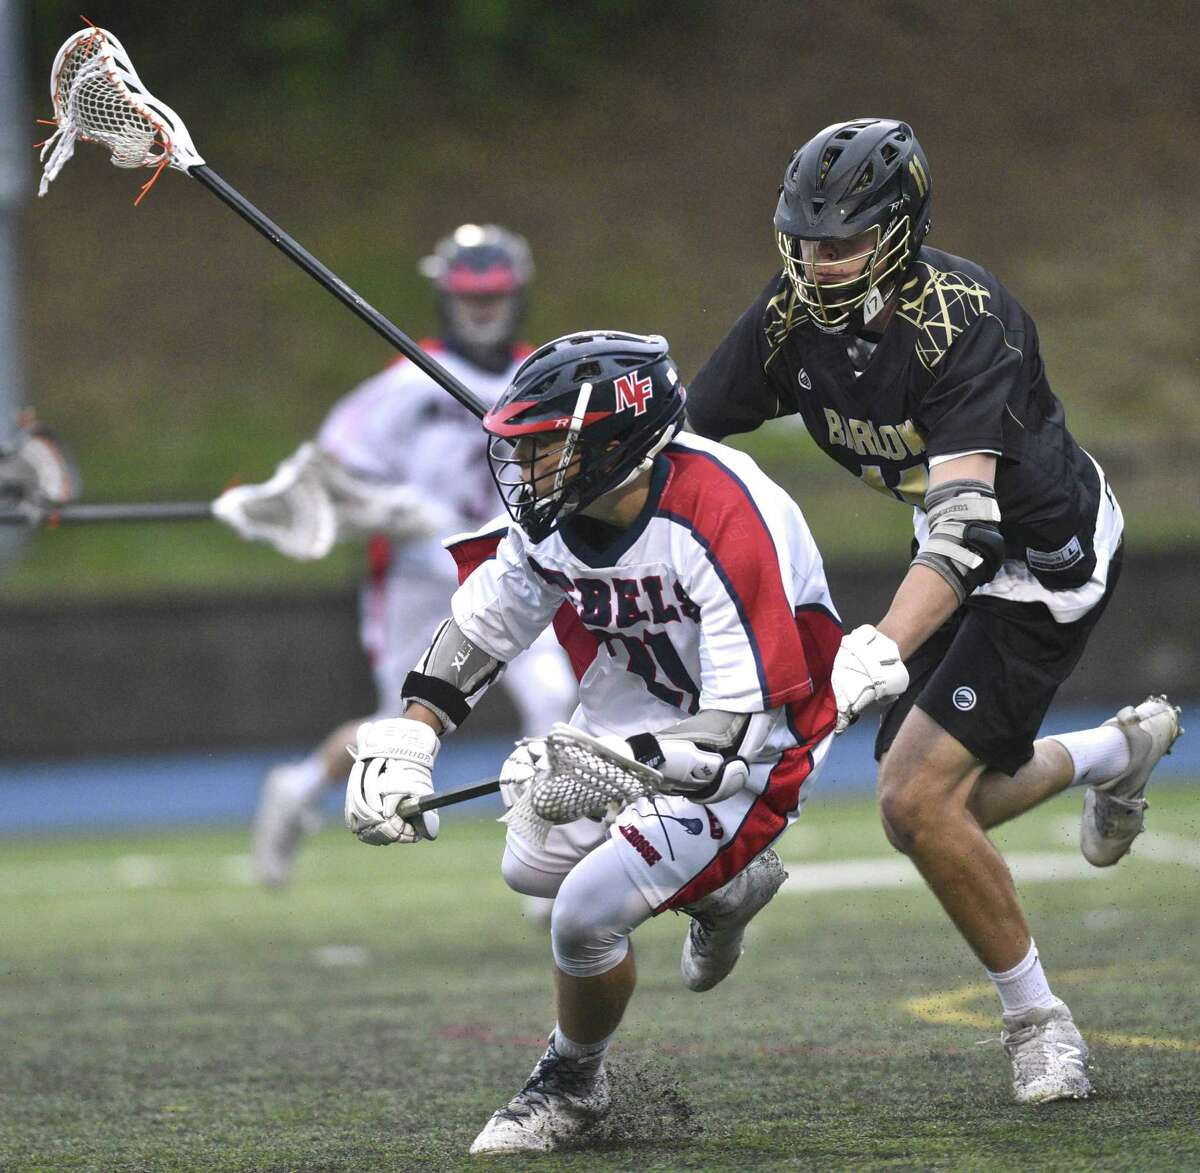 SWC boys lacrosse championship game between Joel Barlow and New Fairfield high schools, on Thursday night, May 25, 2017, at Newtown High School, Newtown, Conn.